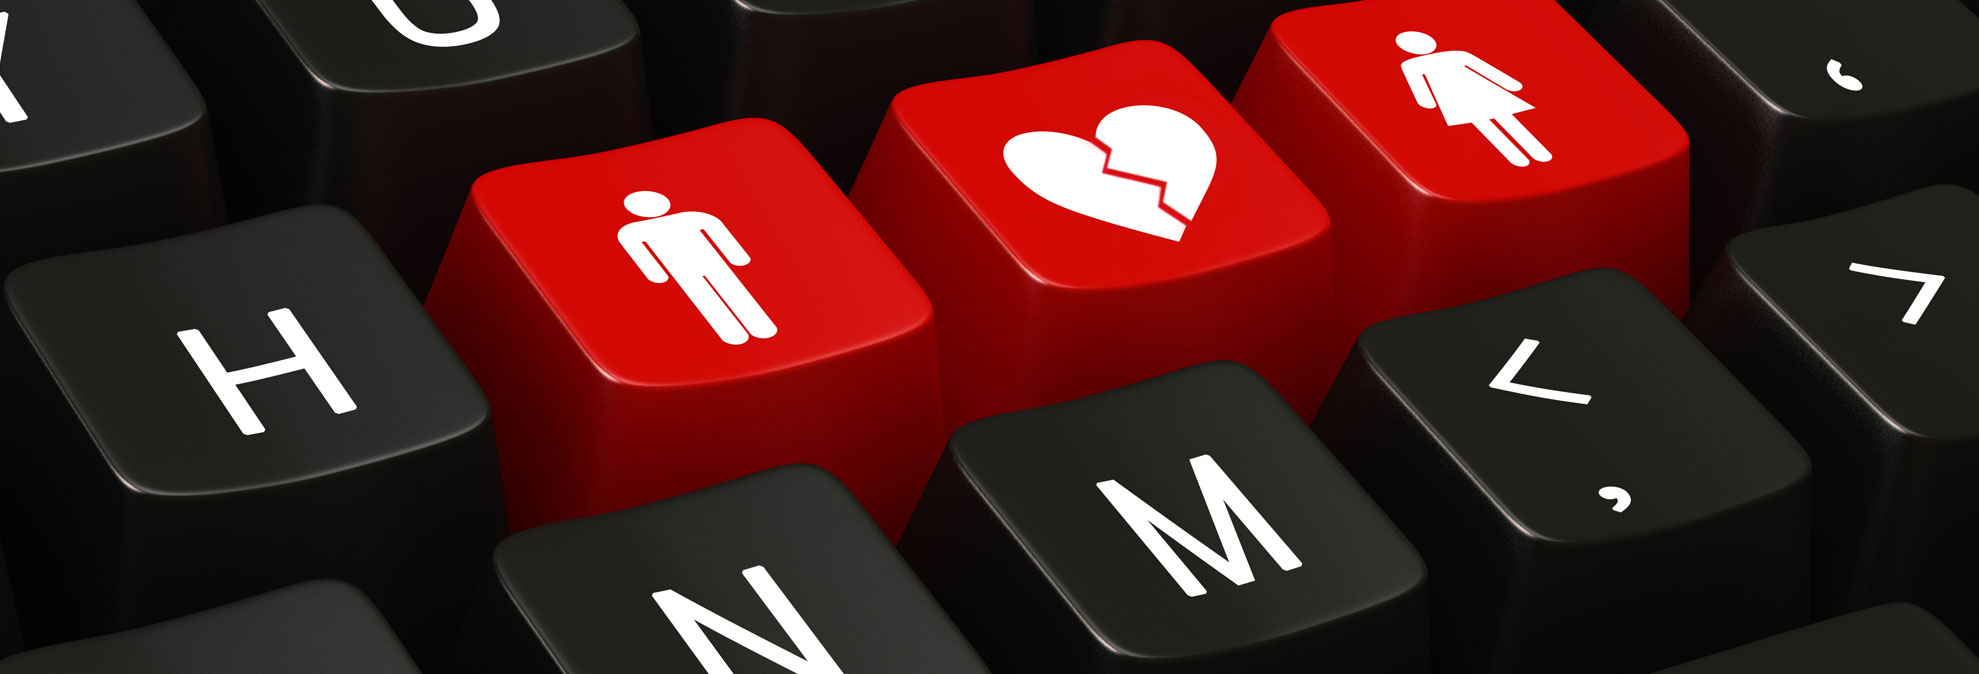 Consumer reports best senior dating sites - Warsaw Local